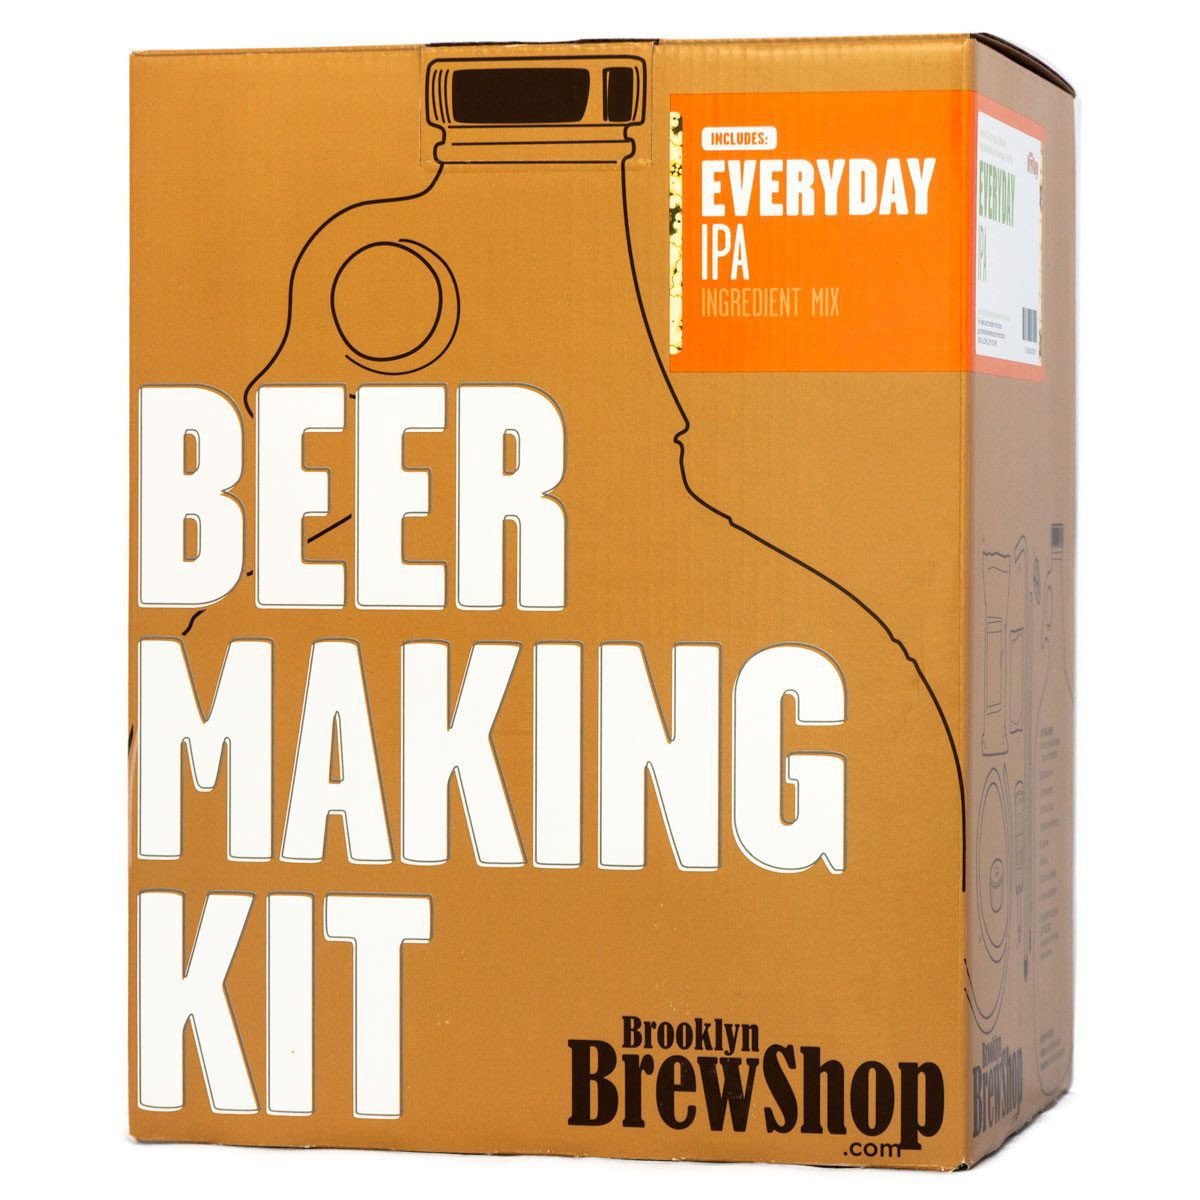 Father's Day gift ideas - Brooklyn Brew Shop Everyday IPA Beer Making Kit